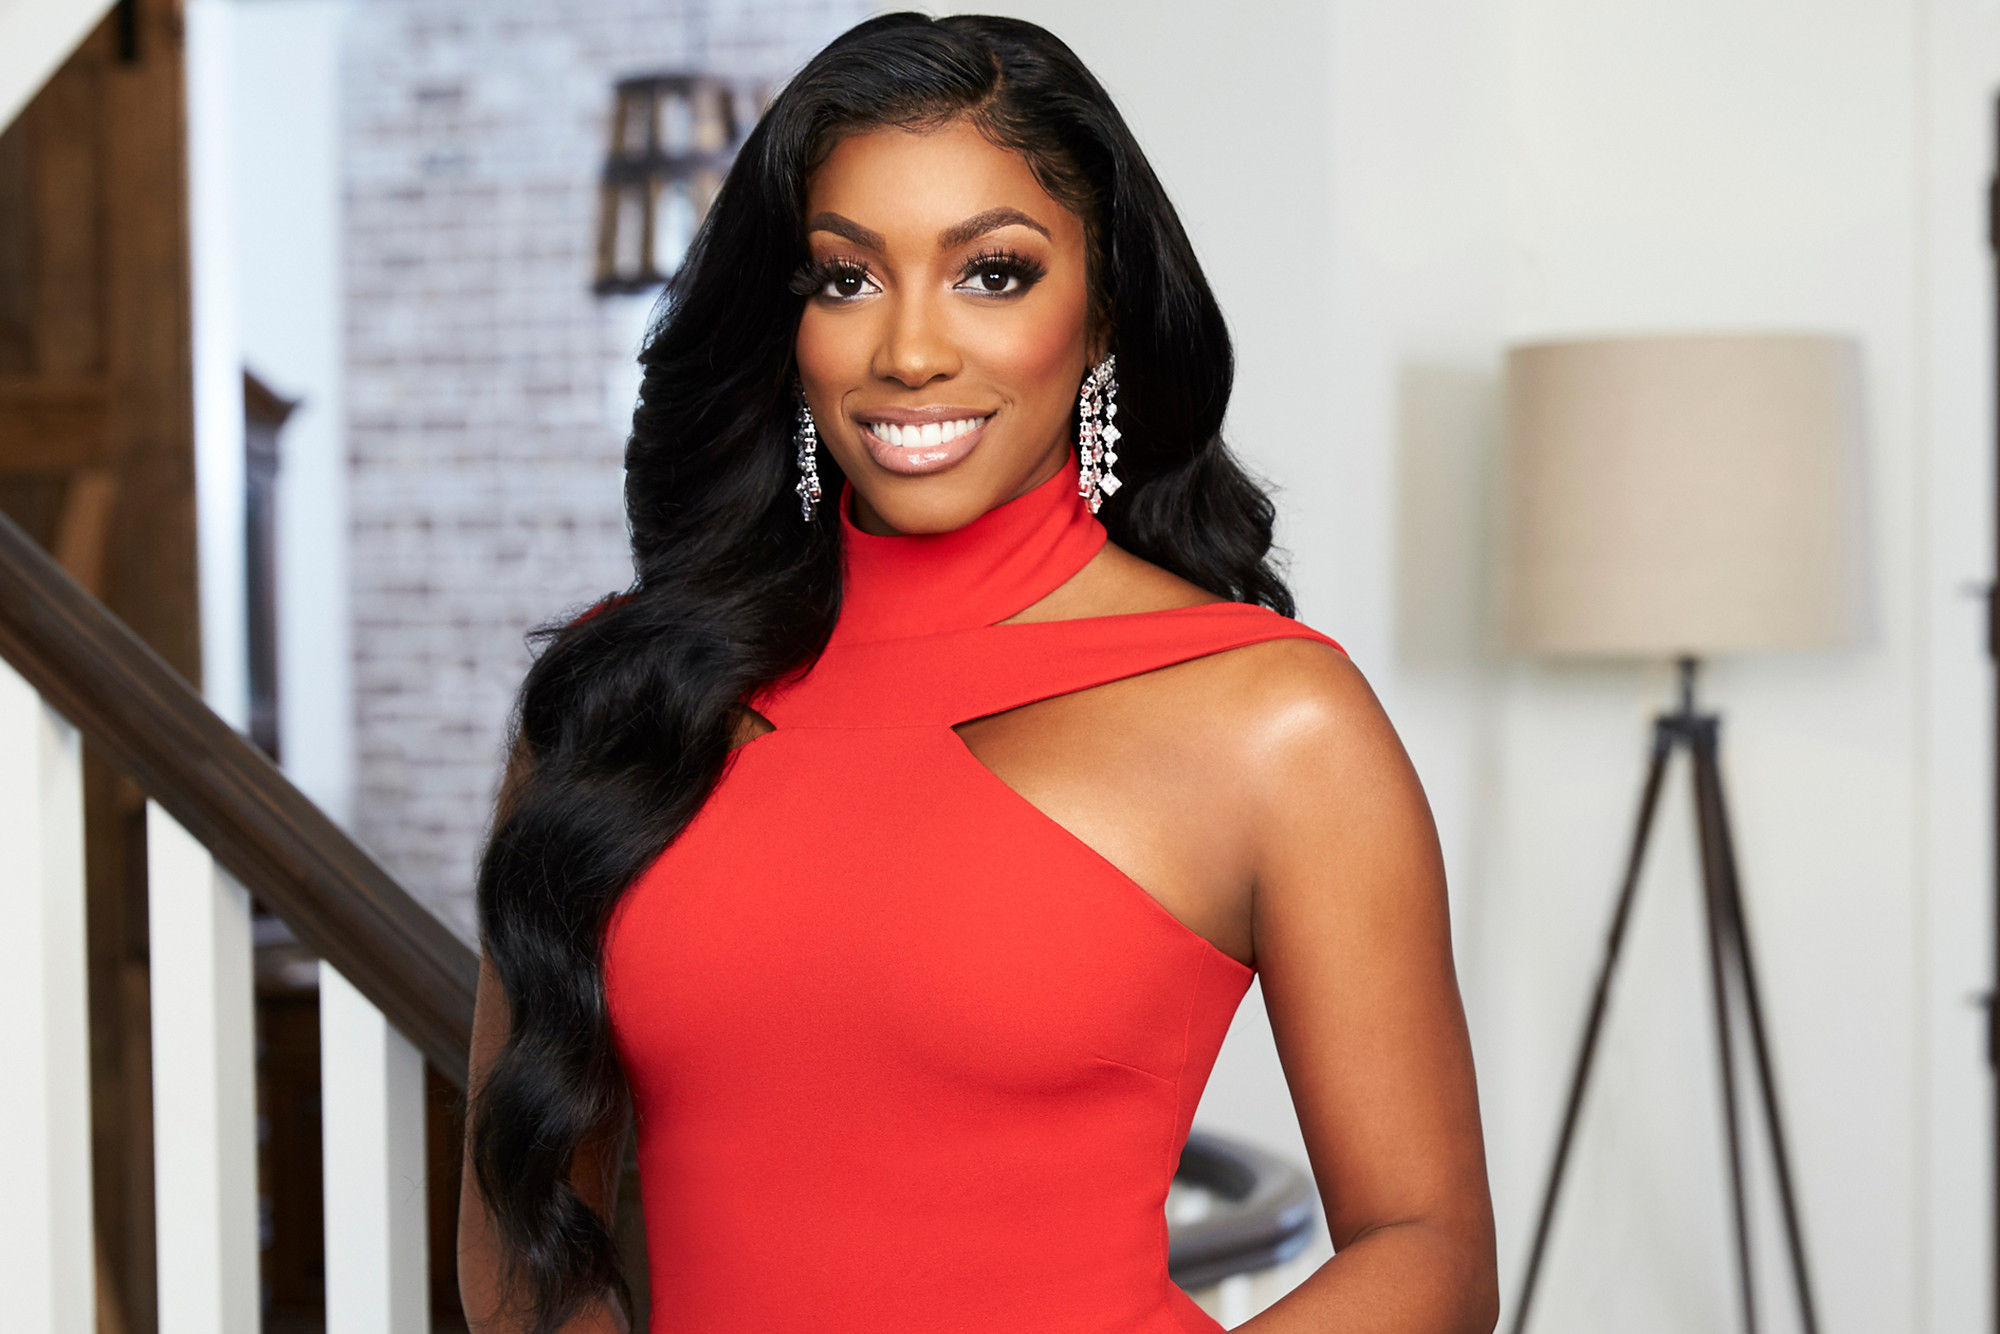 Porsha Williams' Jaw-Dropping Look From Her Baby Shower Day Has Fans In Awe - She Rocks A Red Skin-Tight Dress